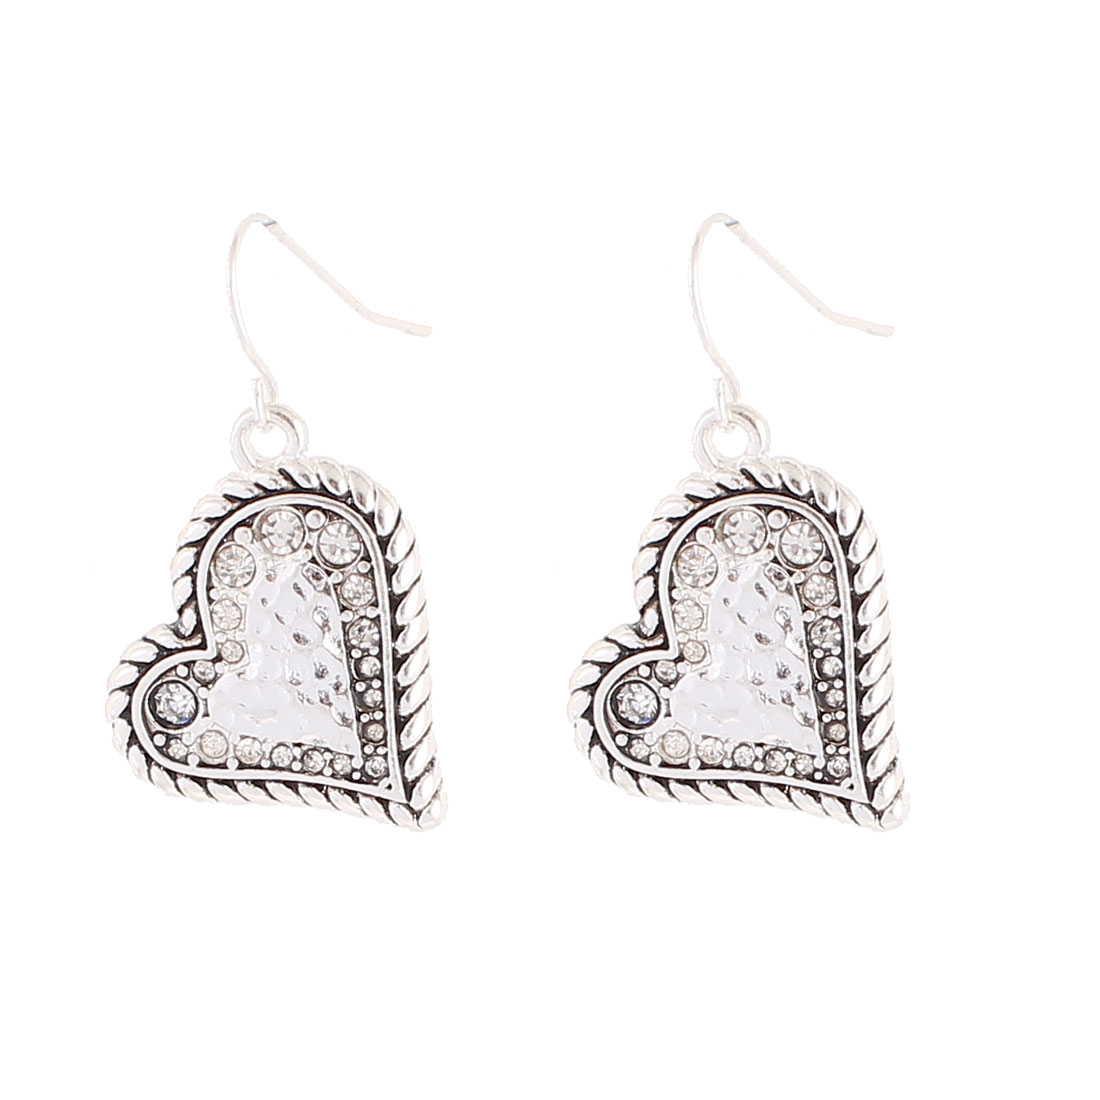 "Woman Metal Heart Shape Dangling Pendant Hook Earrings Earbobs Silver Tone 1.4"" Length Pair"